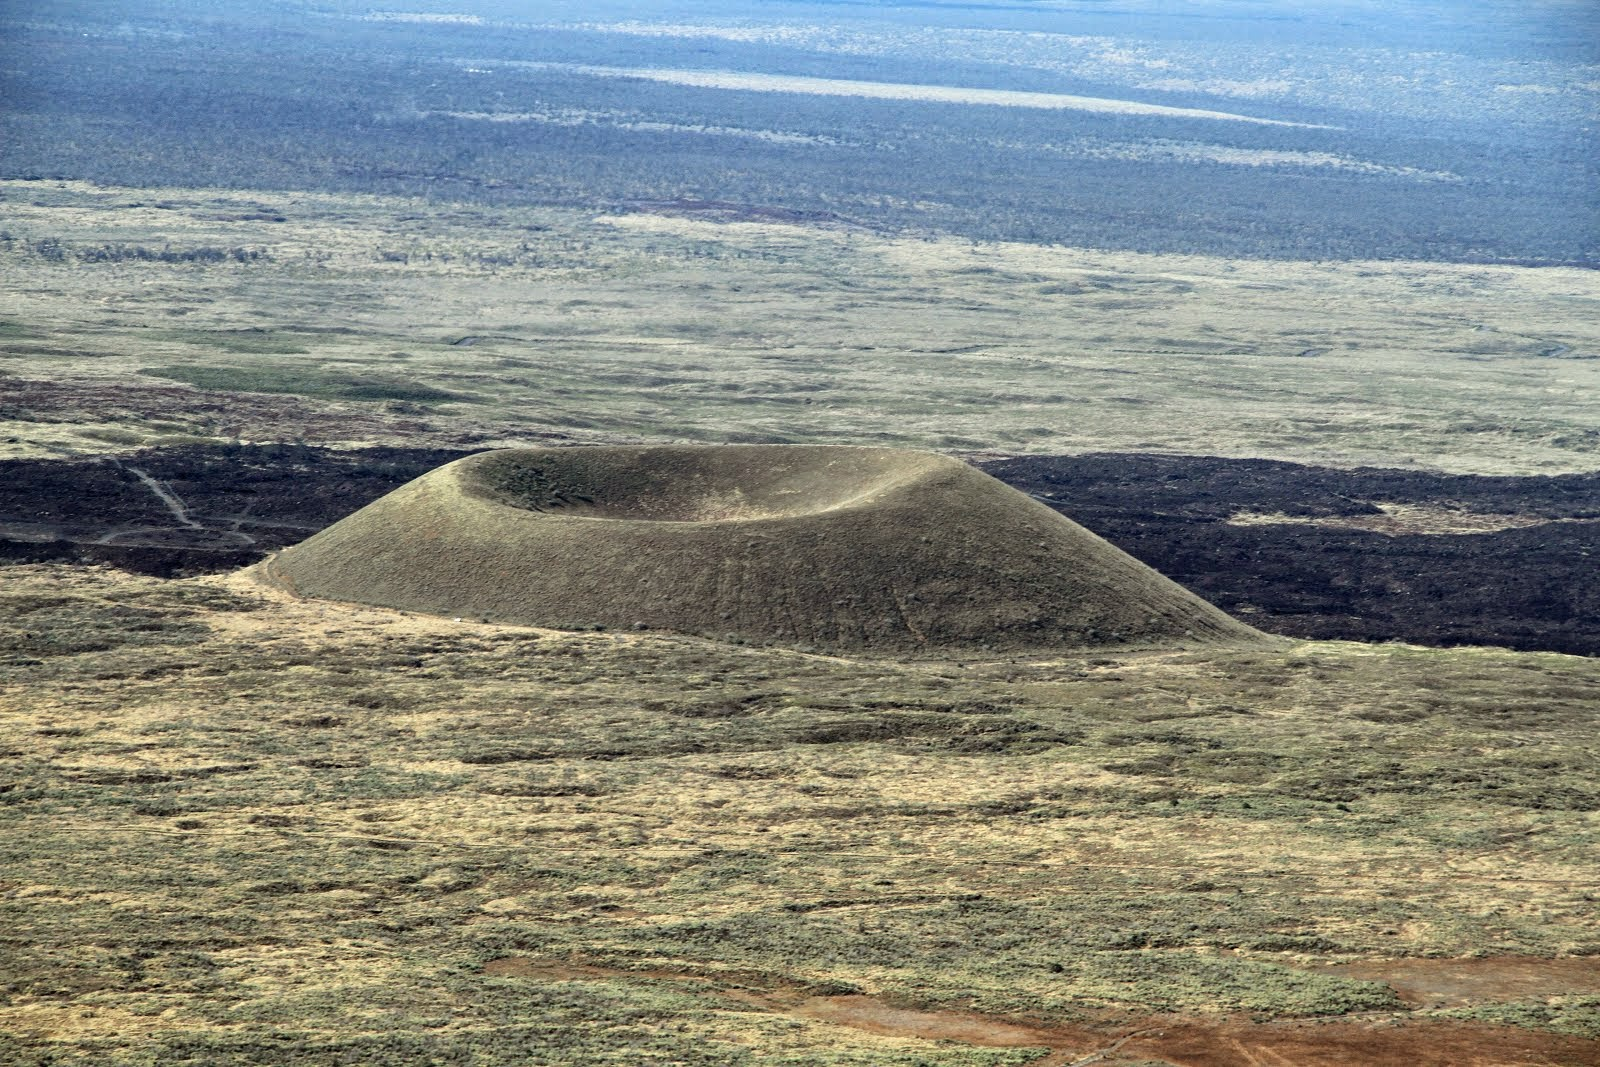 Cinder Cone volcano Pu'u ka Pele on the flanks of shield volcano Mauna Kea on the Island of Hawaii